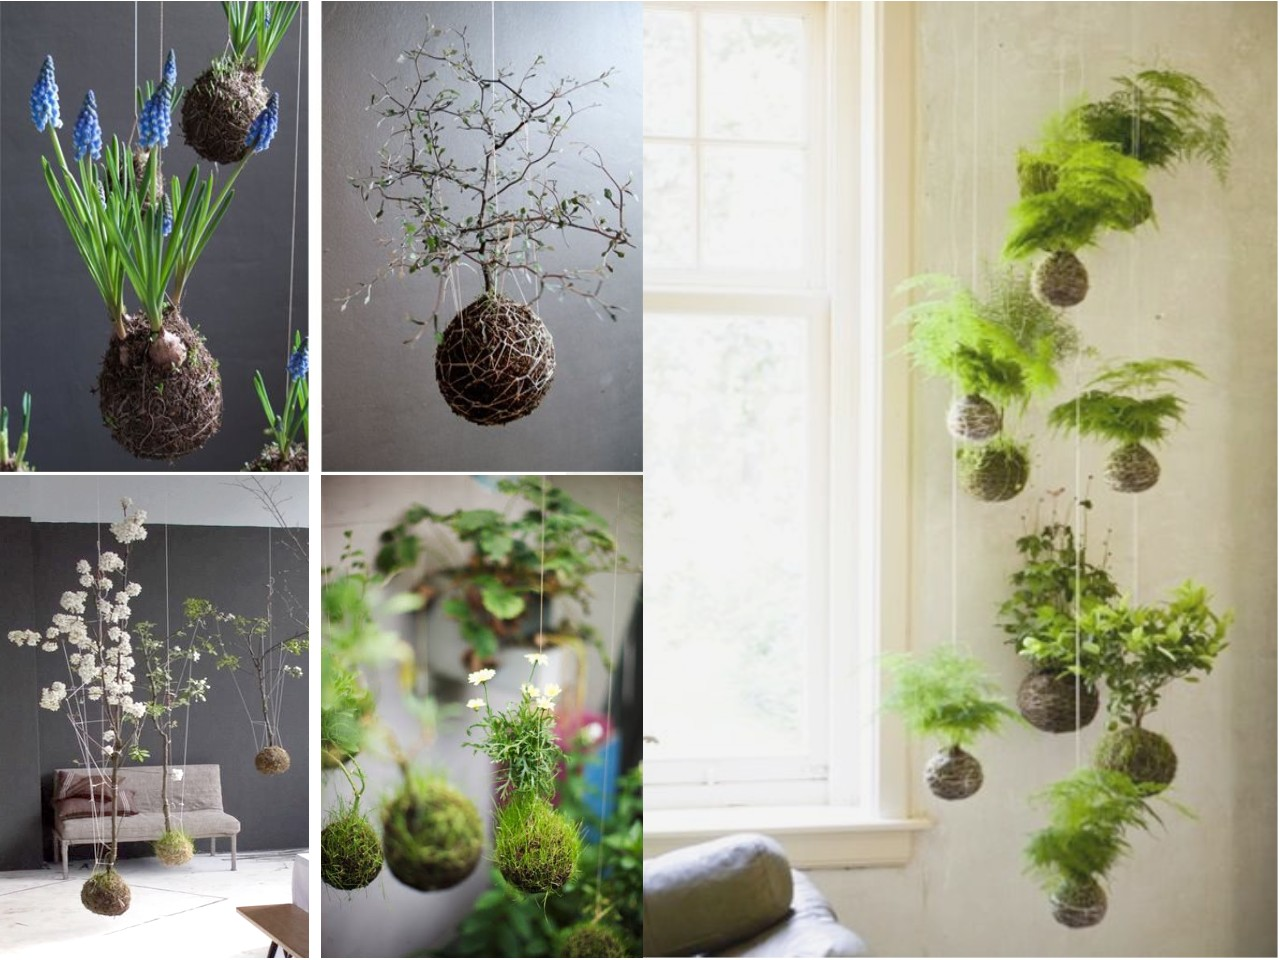 10 ideas de decoraci n con plantas colgantes for Decoraciones para tu hogar